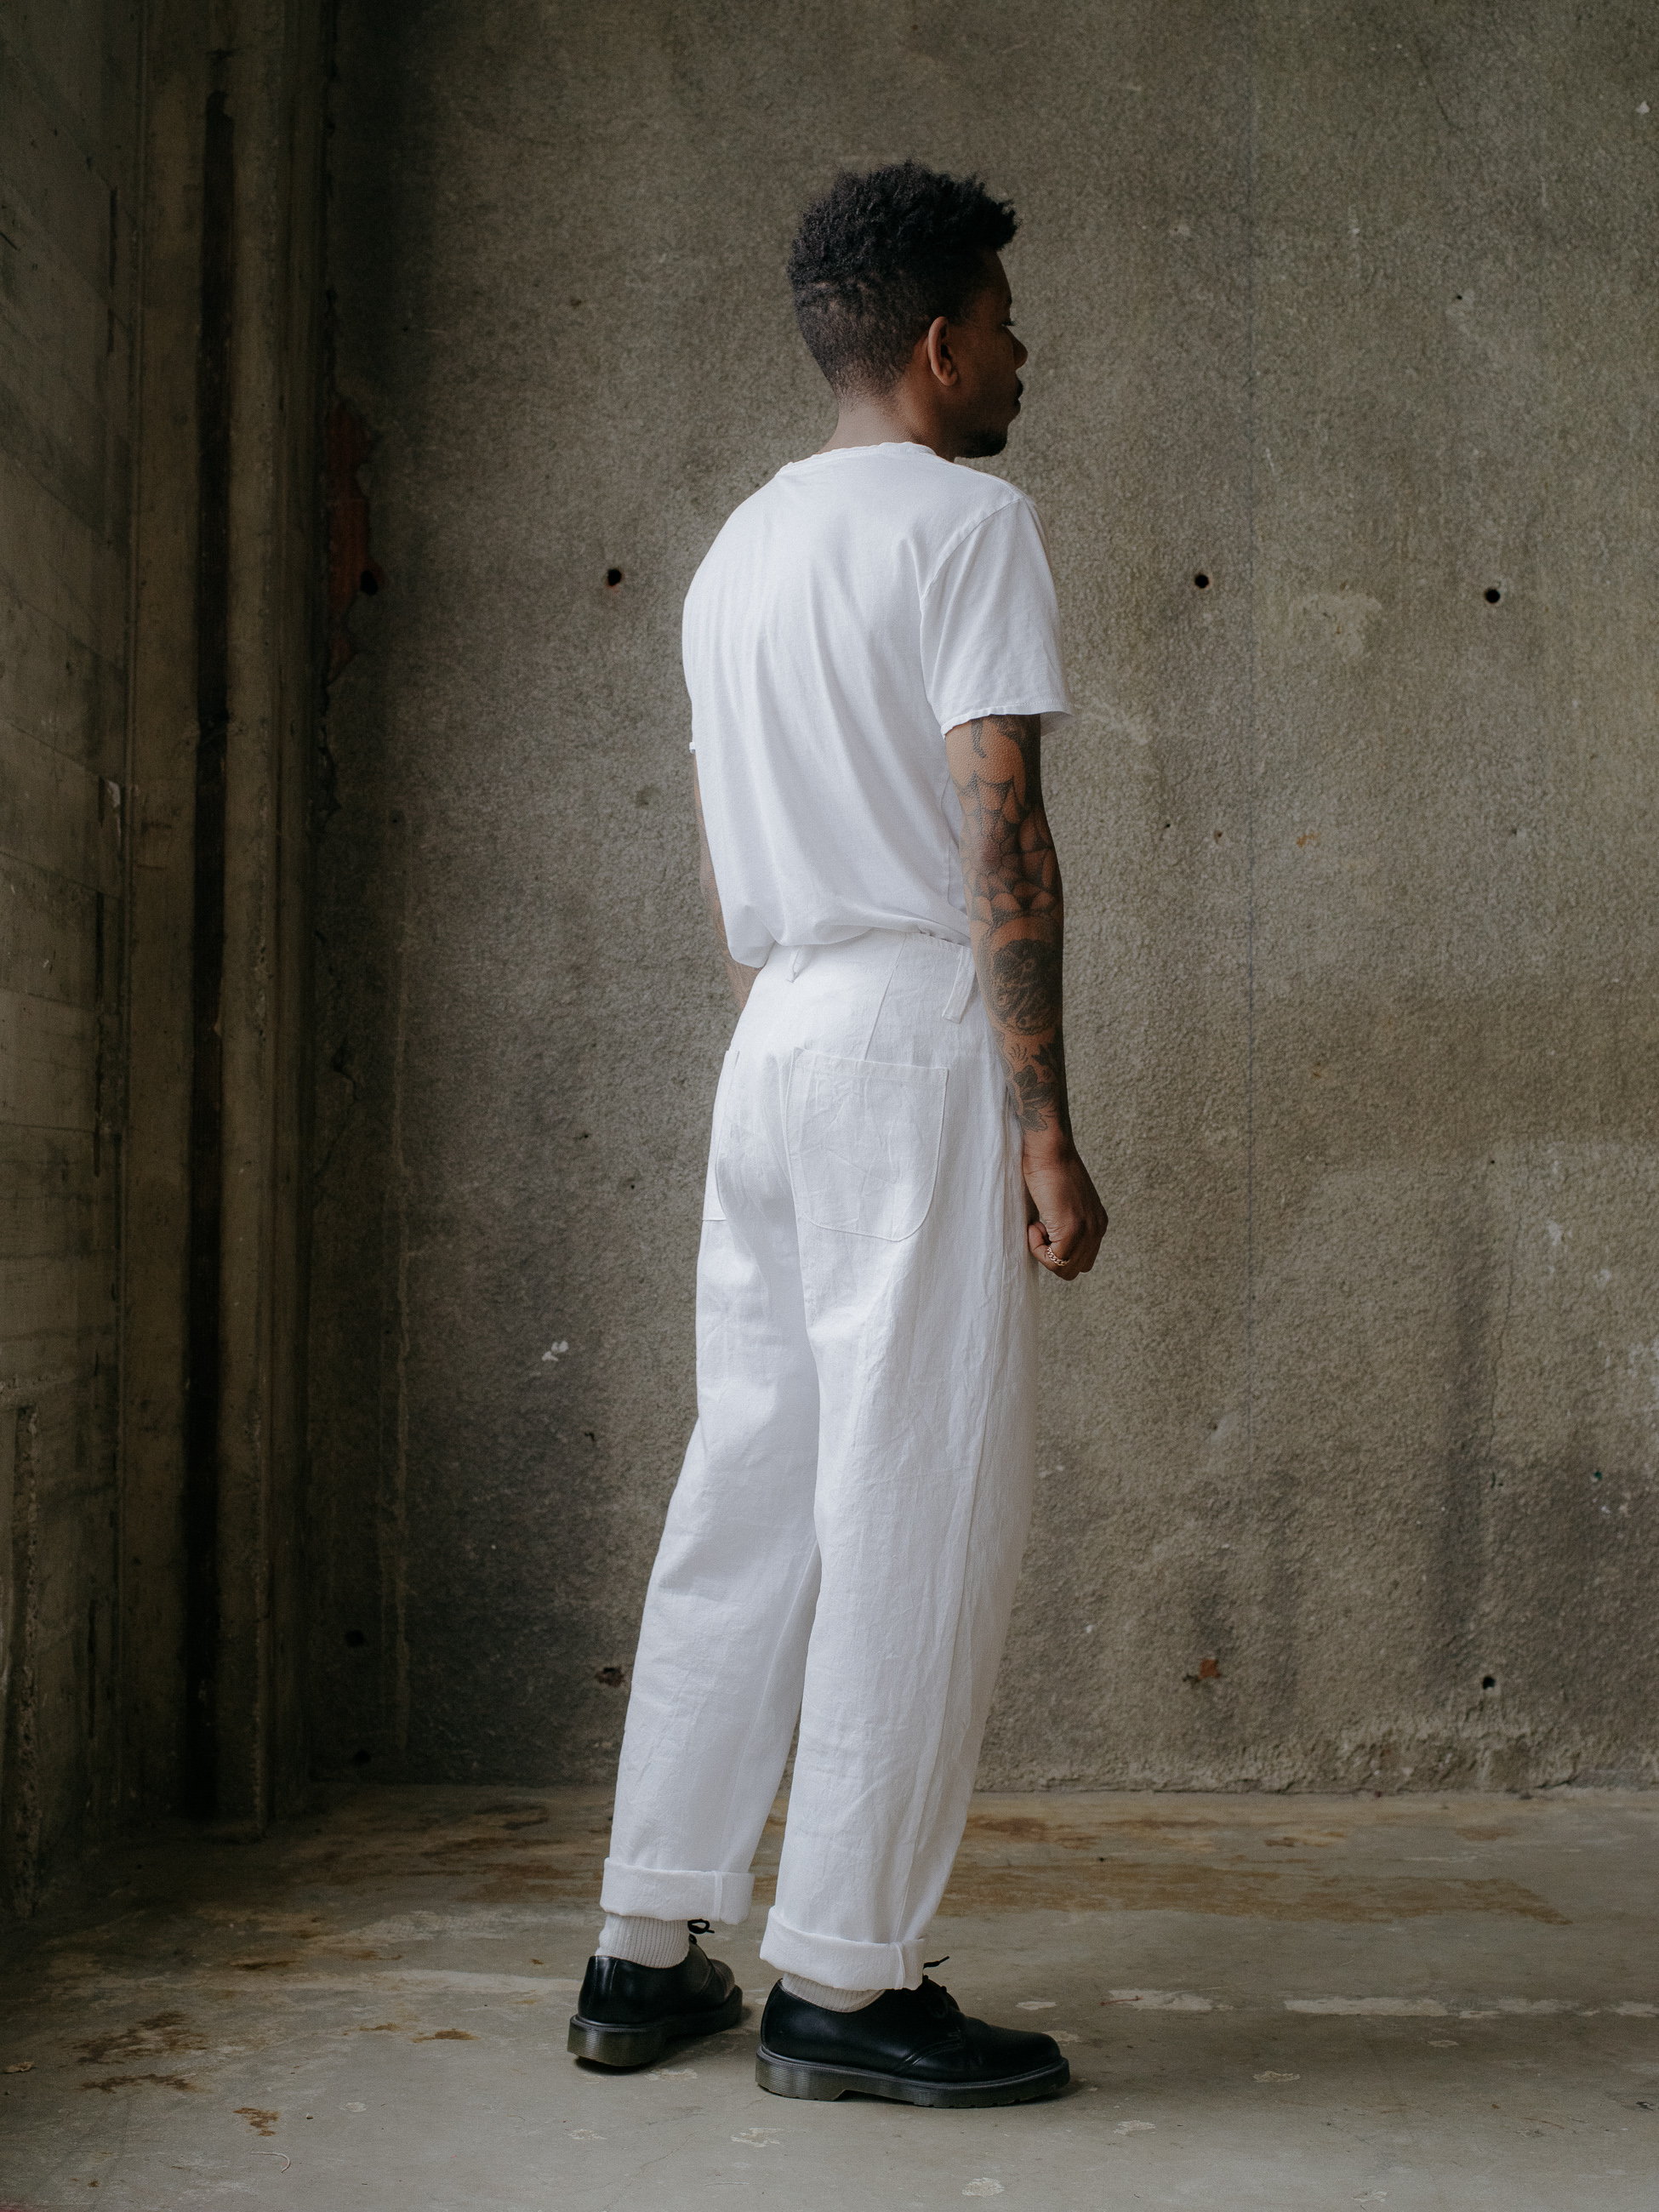 evan-kinori-four-pocket-pant-tumbled-hemp-cotton-twill-4